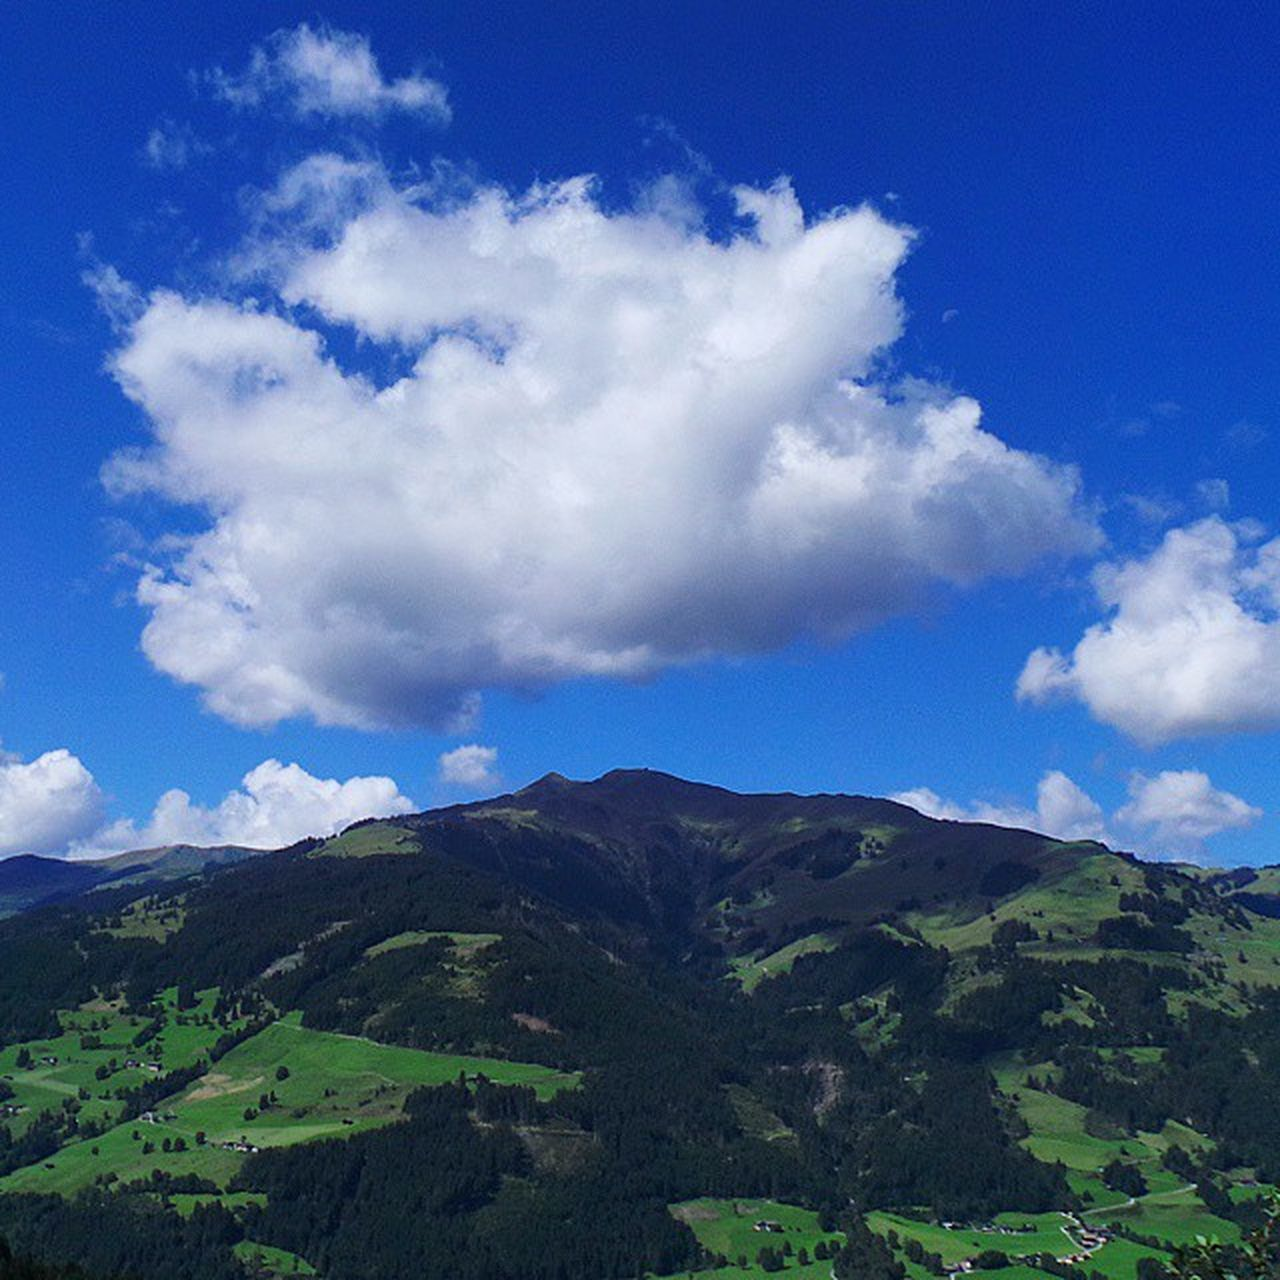 sky, beauty in nature, nature, mountain, tranquil scene, cloud - sky, tranquility, no people, scenics, landscape, day, outdoors